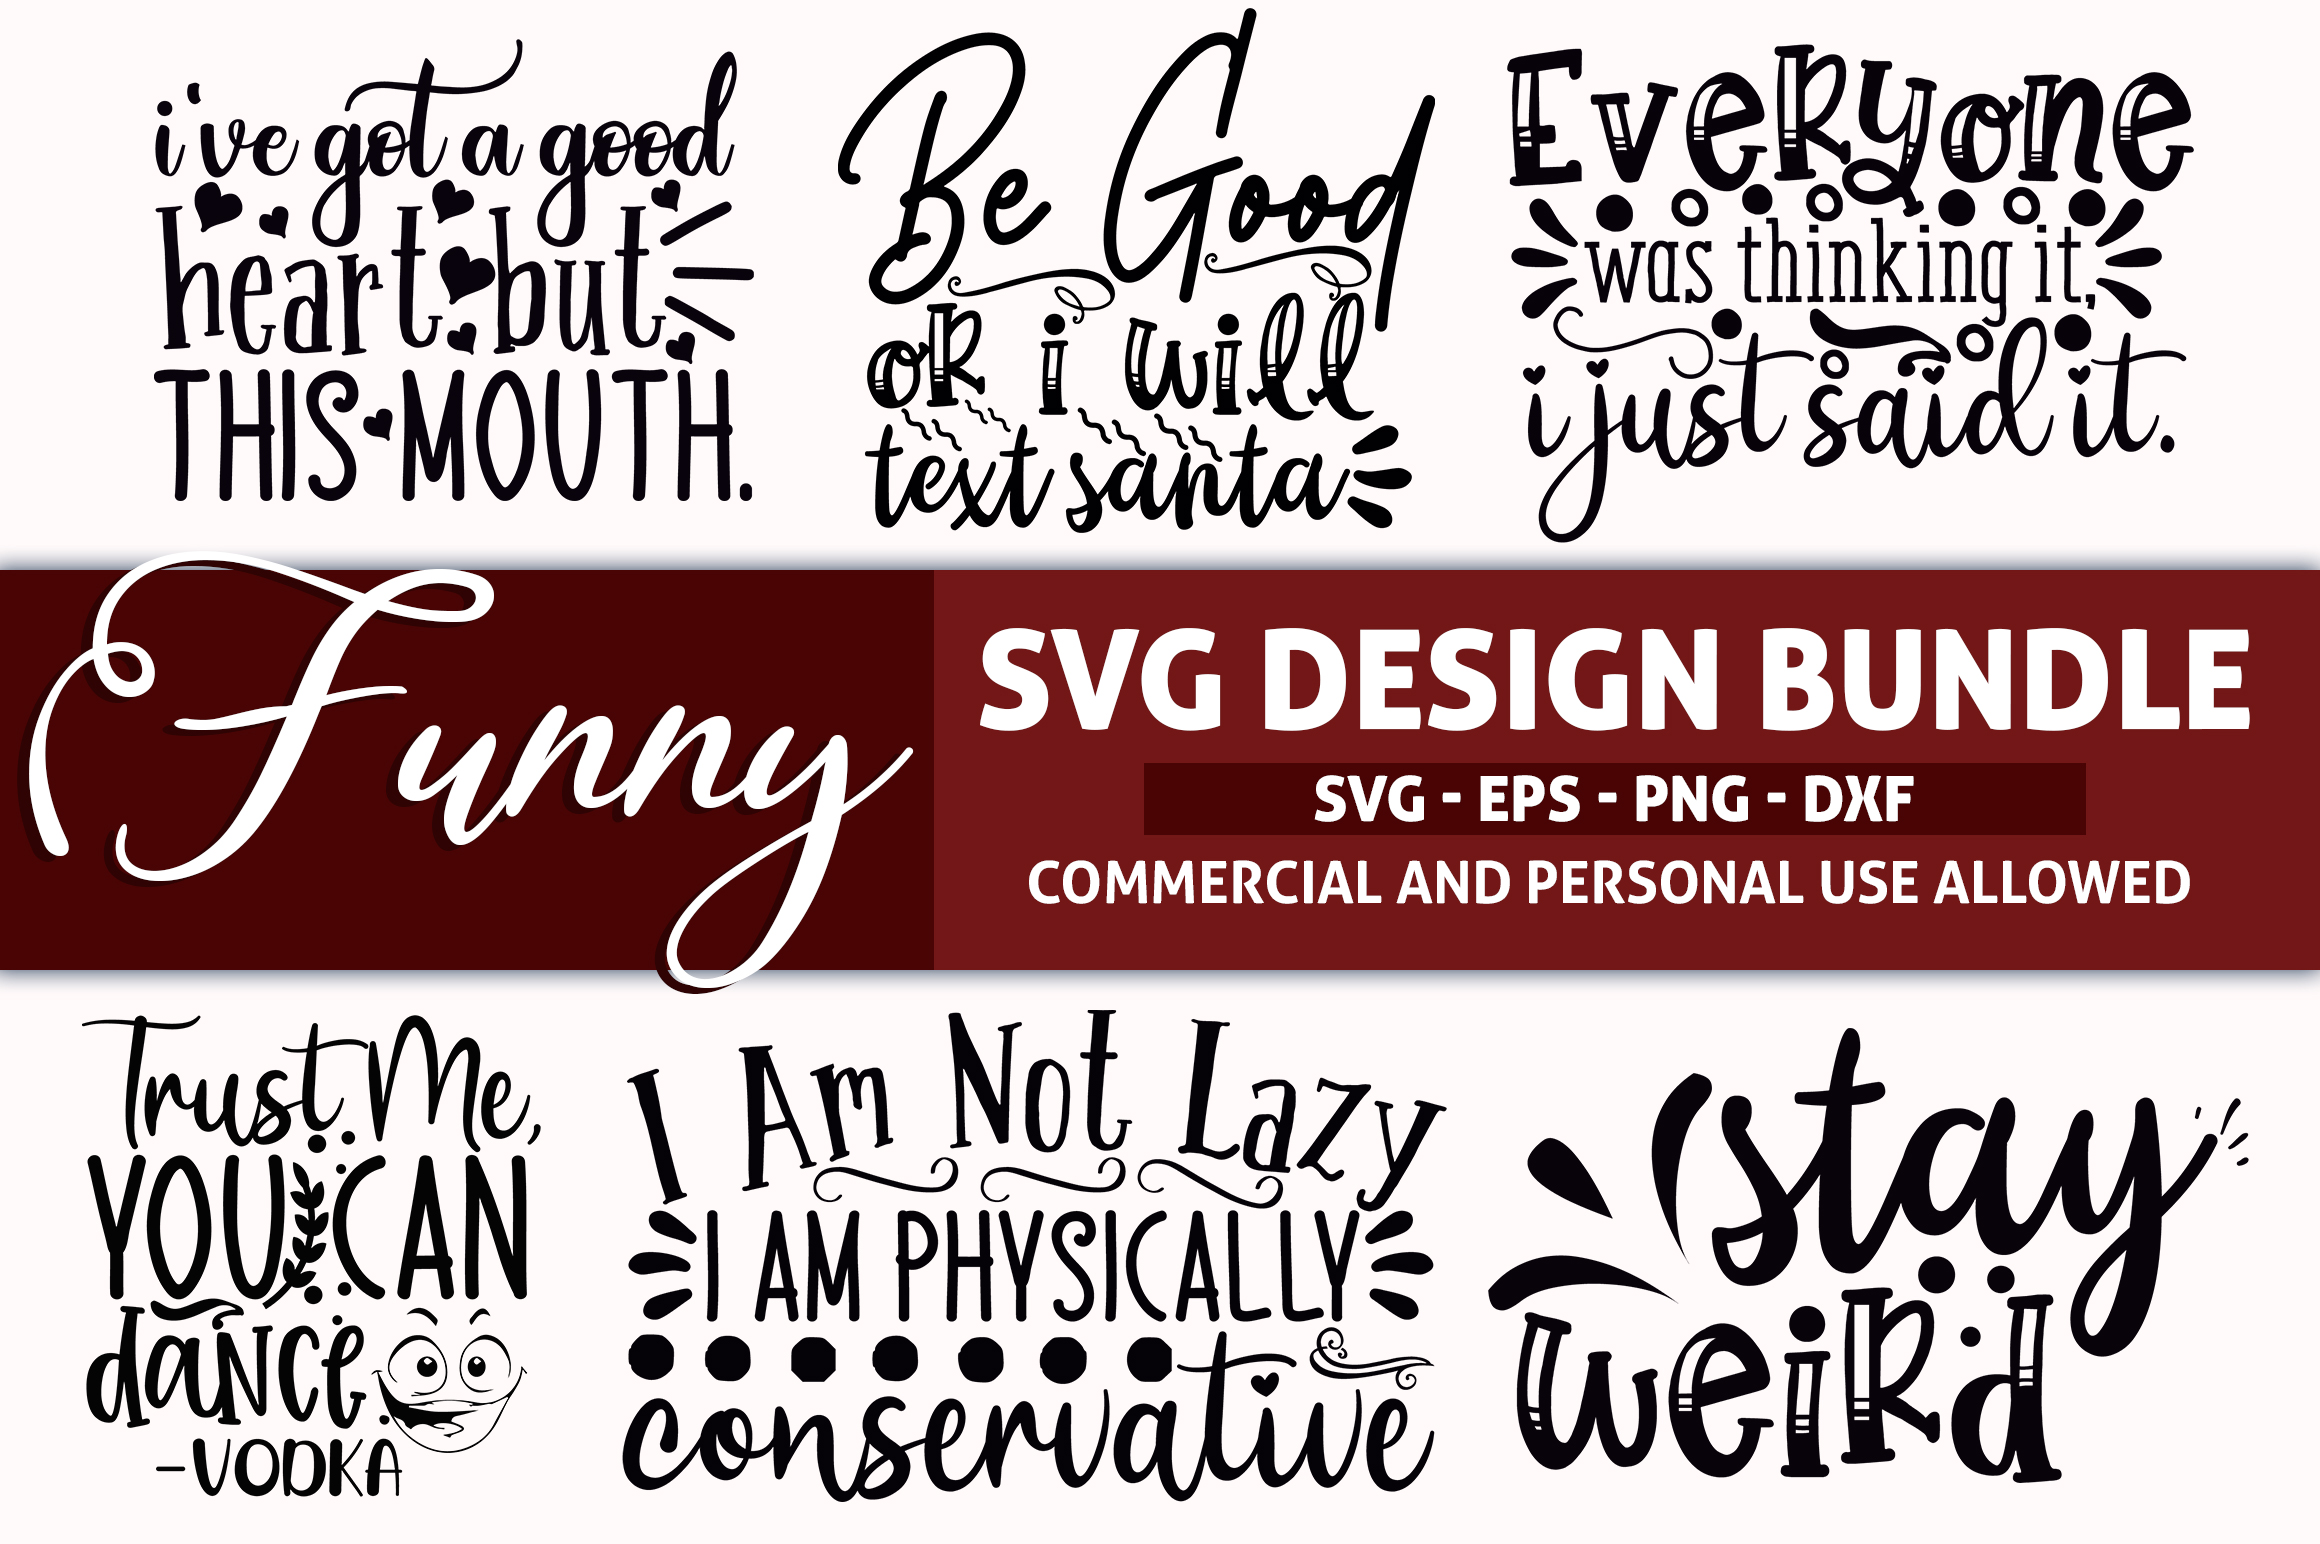 510 SVG DESIGN THE MIGHTY BUNDLE |32 DIFFERENT BUNDLES example image 23